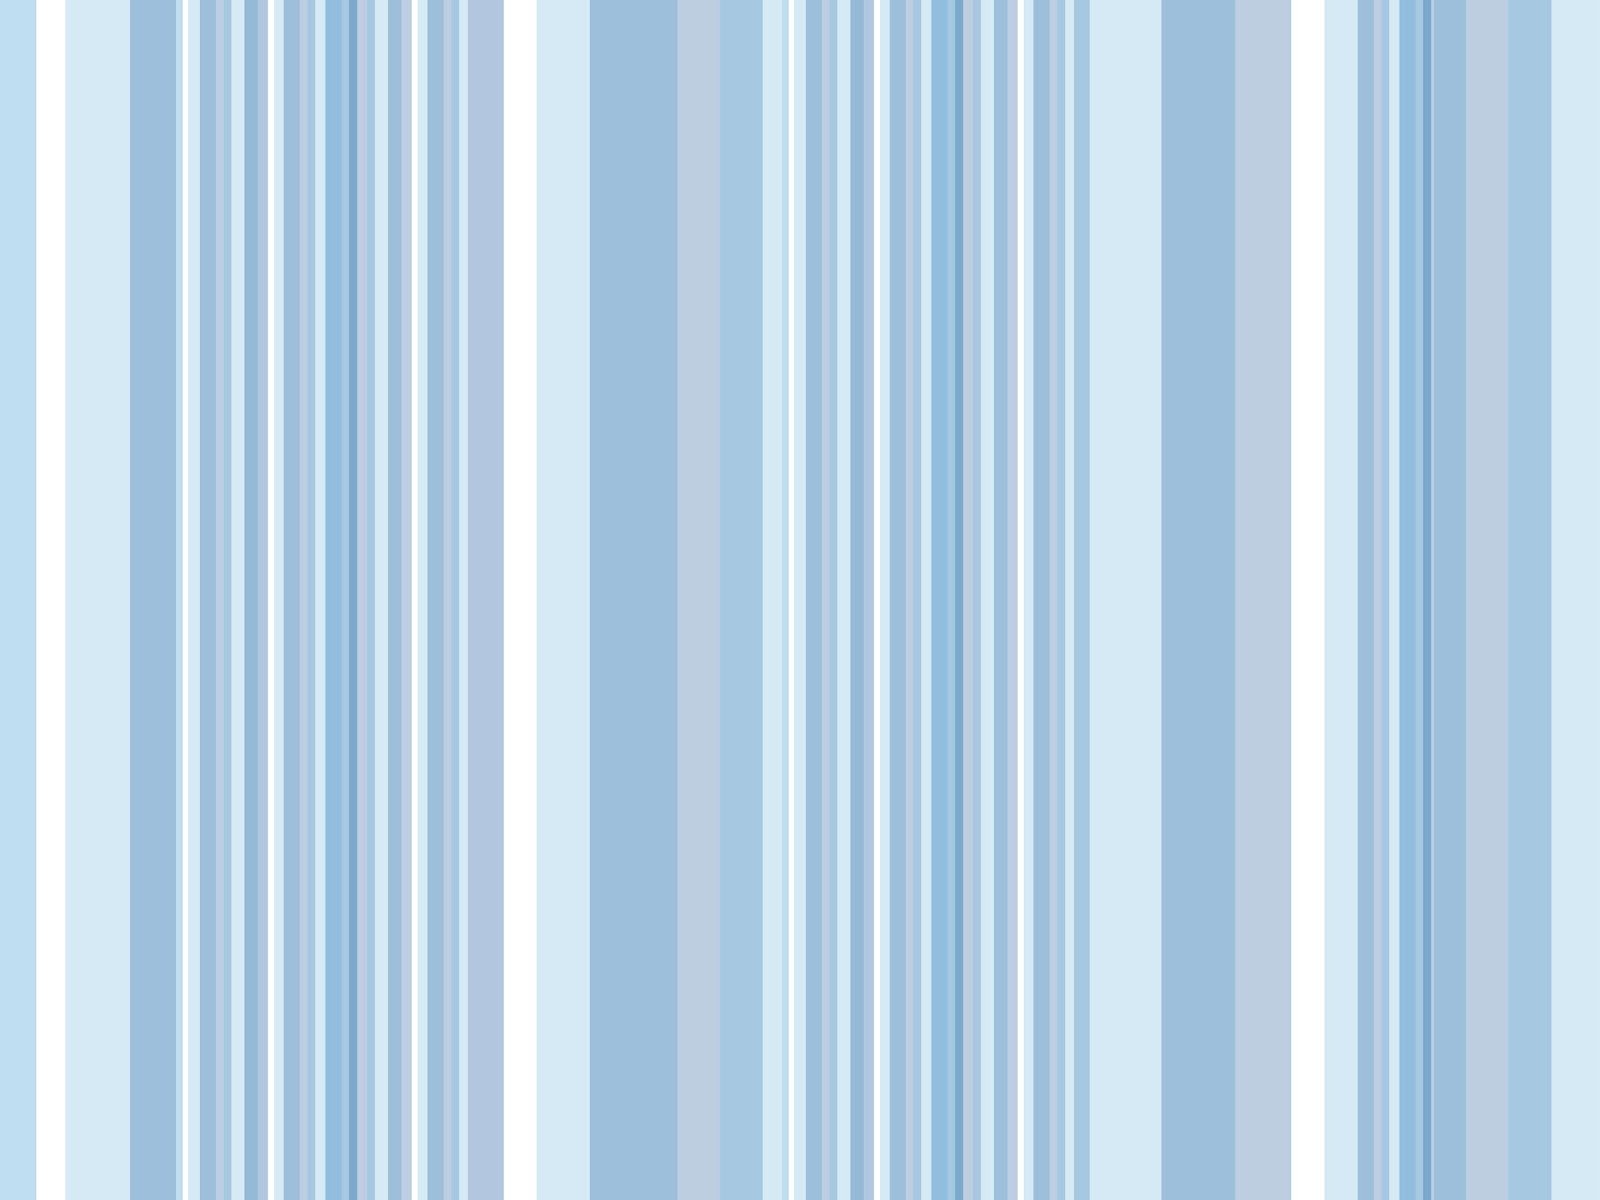 Monochromatic Blue Vertical Stripes Background